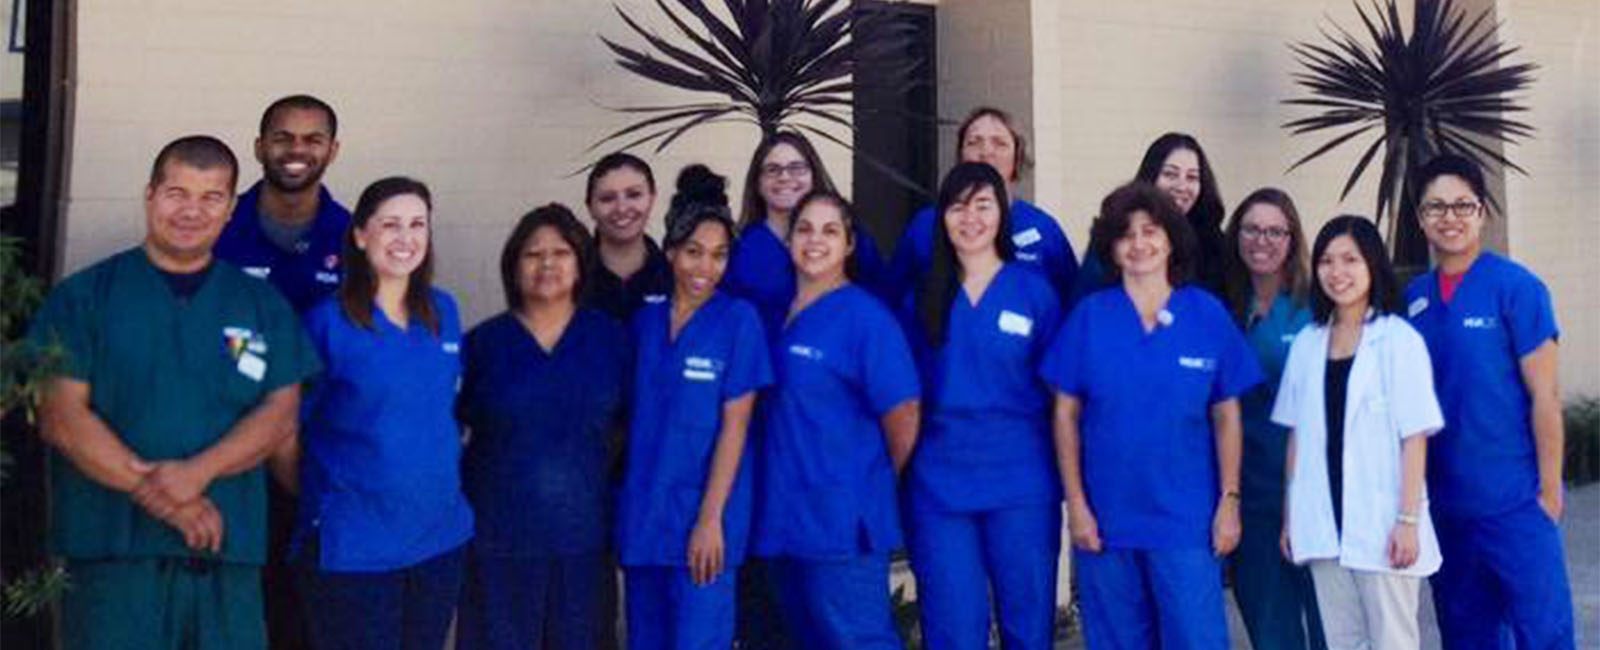 Homepage Team Picture of VCA McClave Animal Hospital